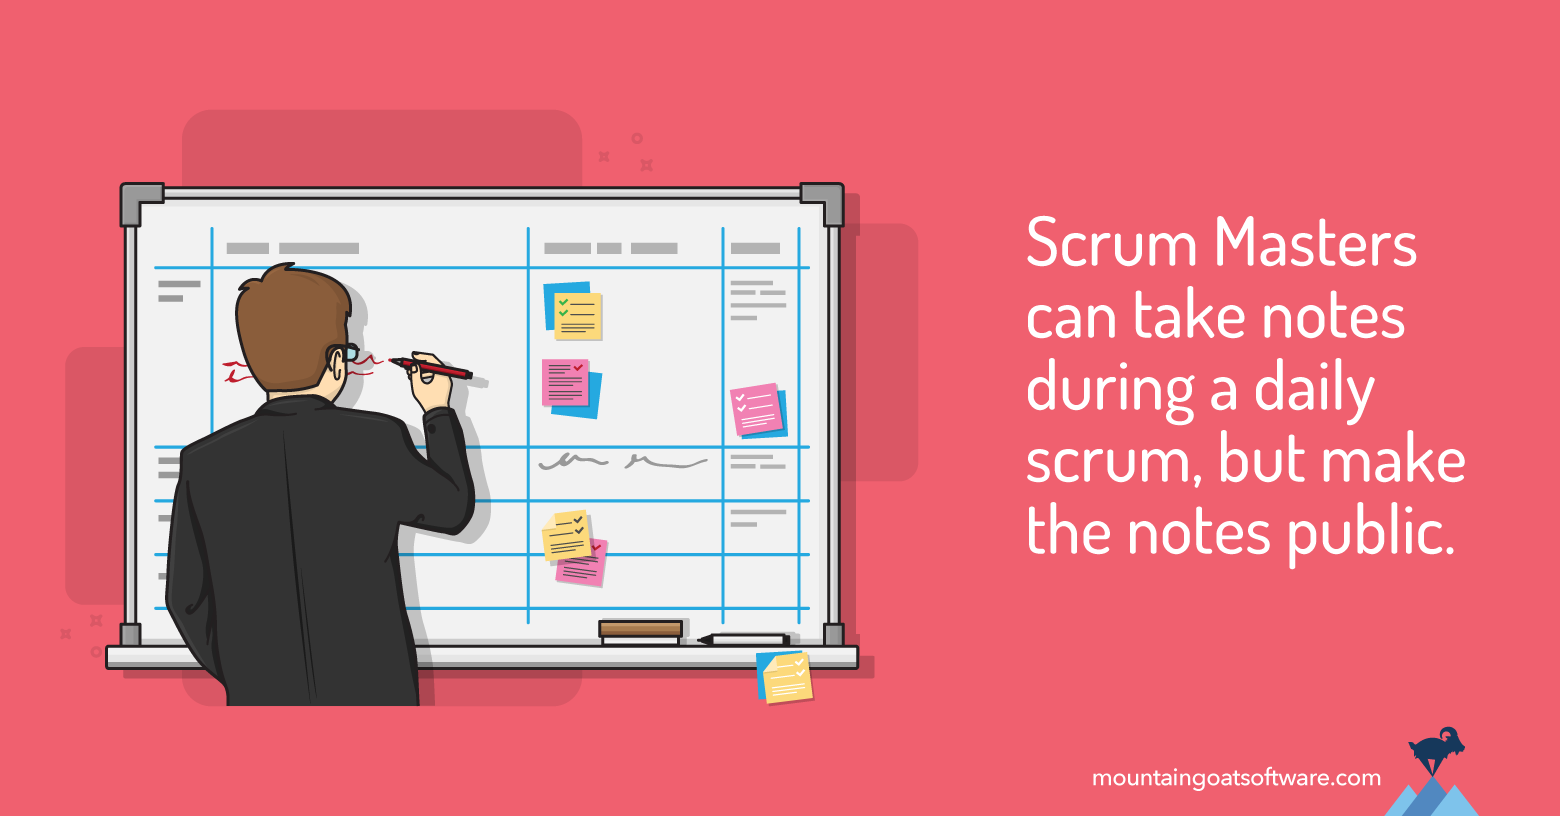 Avoid Taking Notes During the Daily Scrum